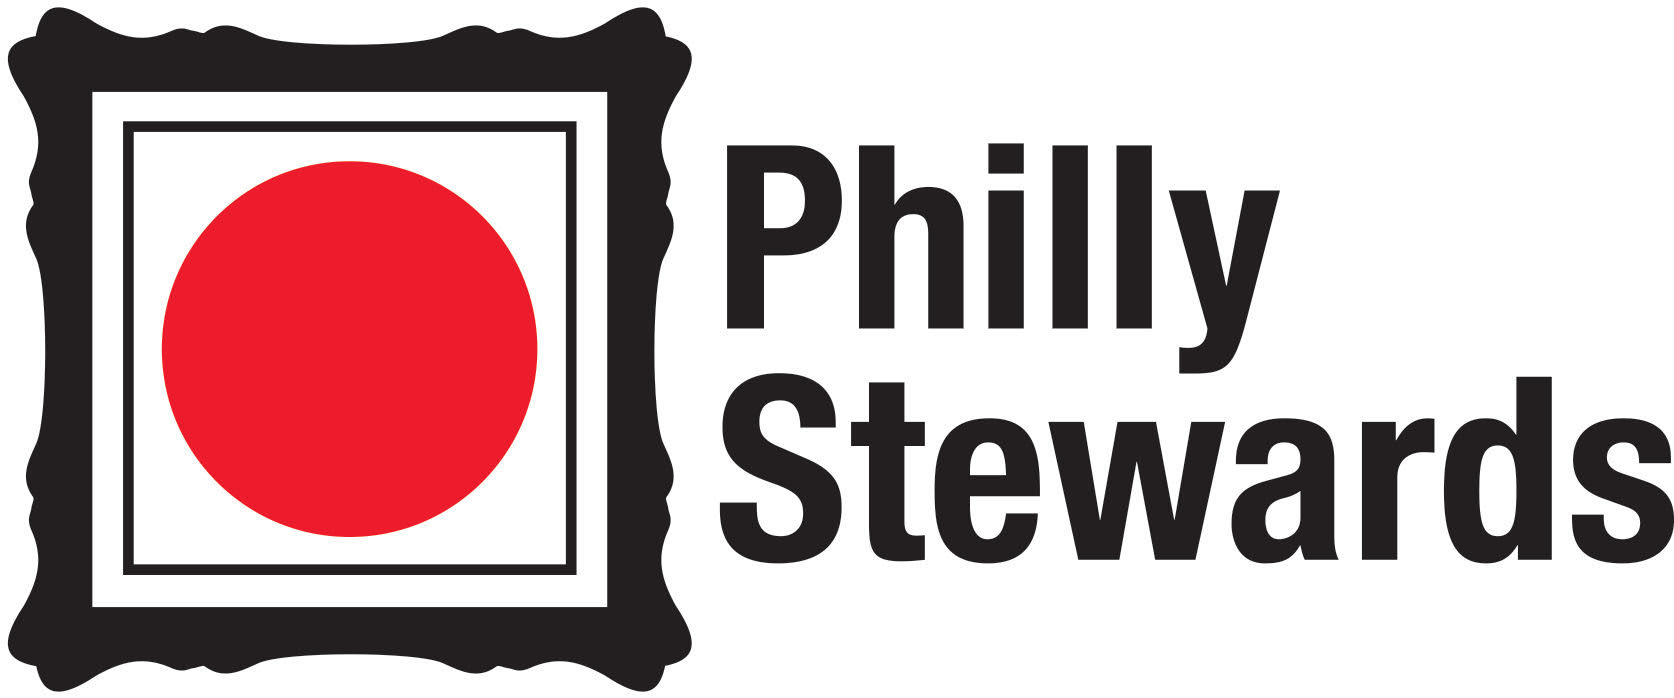 philly-stewards